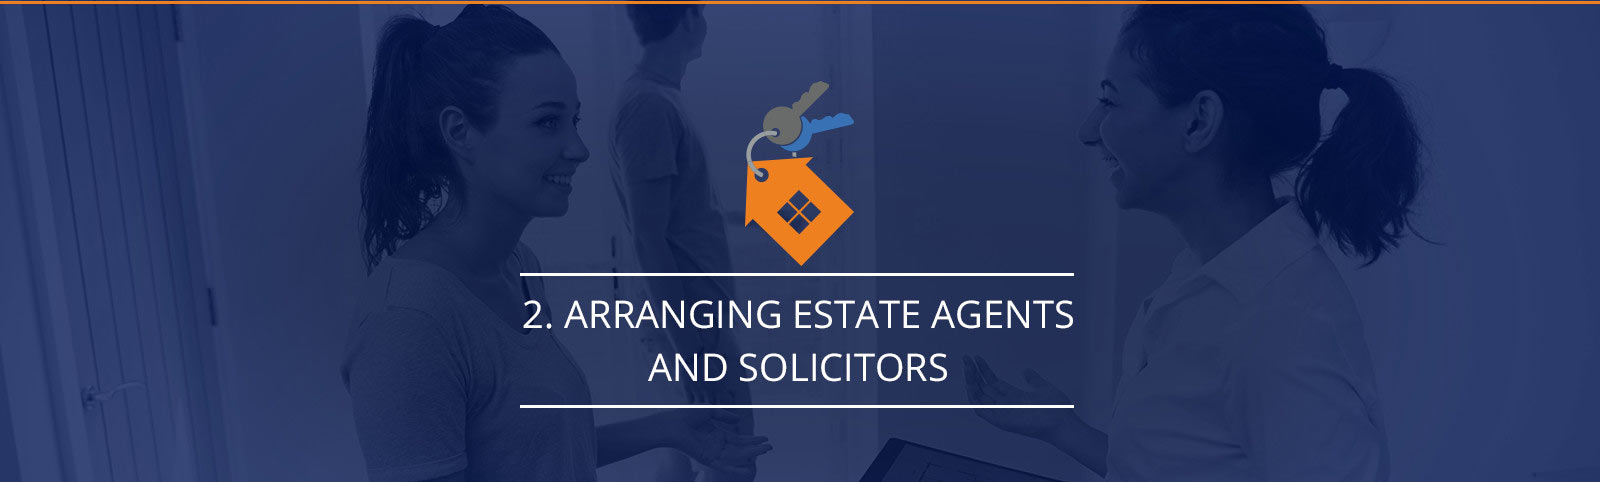 Arranging estate agents and solicitors